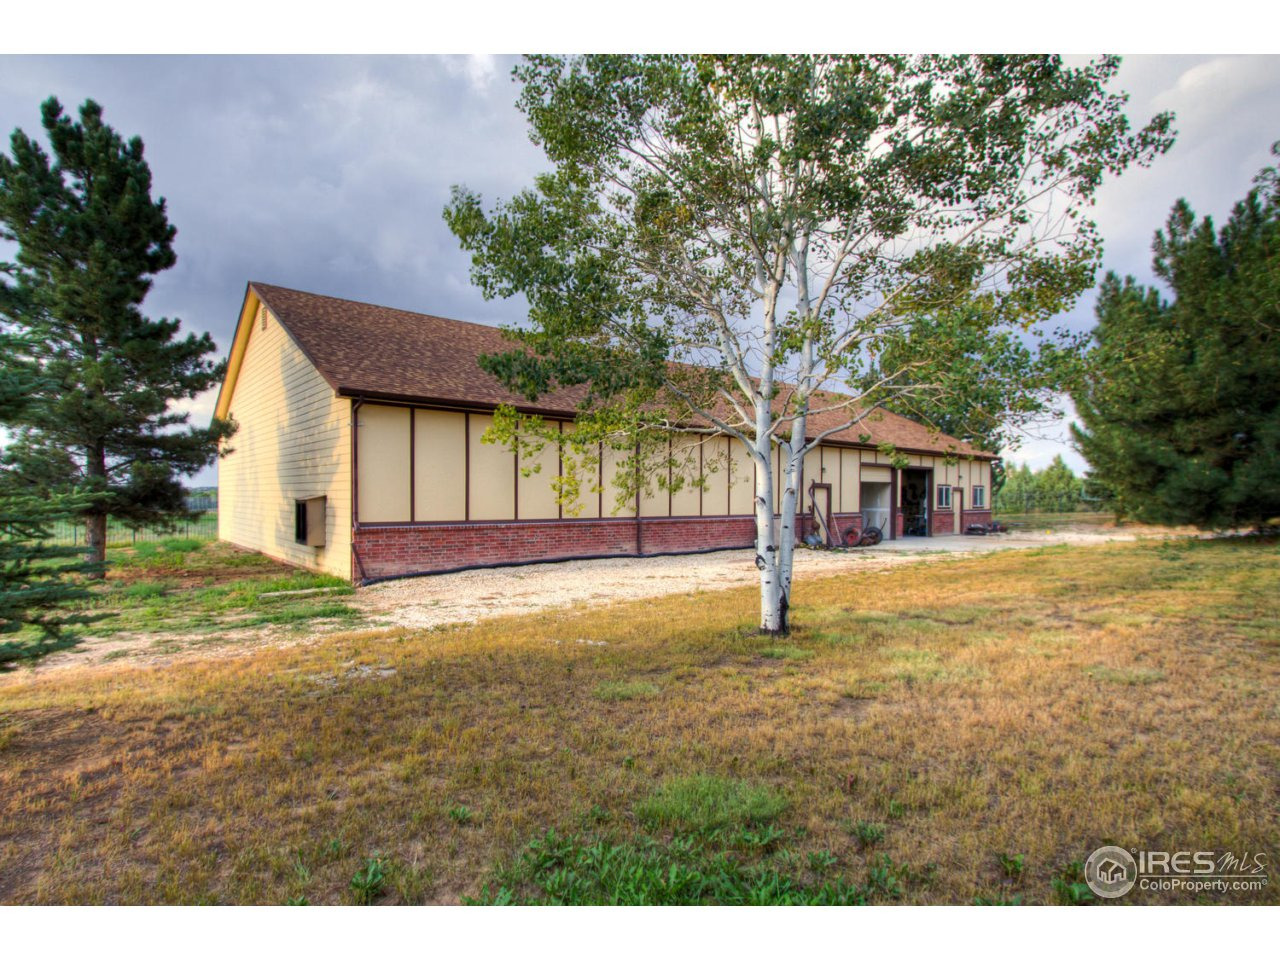 100'x50' Matching Outbuilding